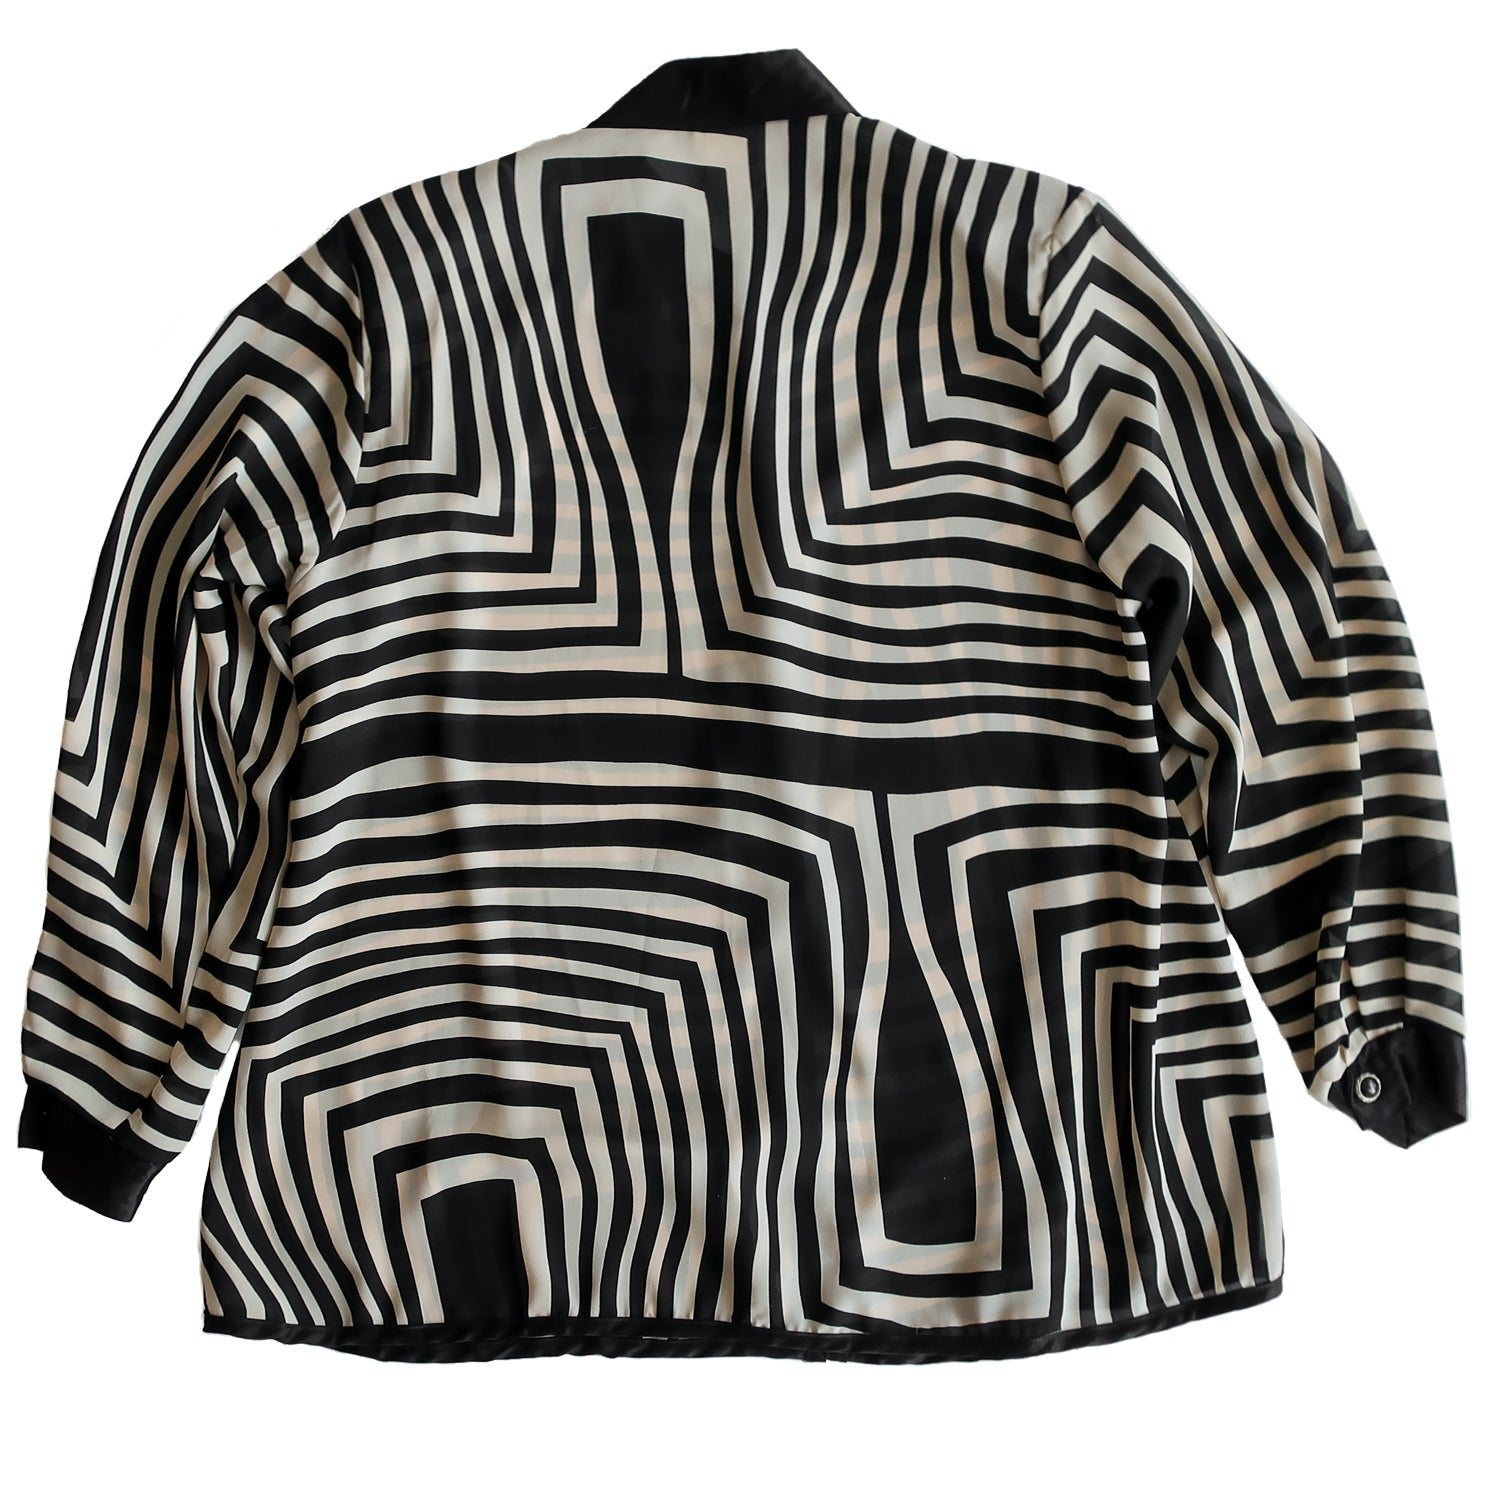 "Second Room Shop Vintage. Shop vintage, shop sustainable. Vintage long sleeve tunic style blouse, semi sheer, with beige and black striped patterns. Black satin trim on collar, front, and cuffs, and has silver and black buttons that go 20"" down the front; the bottom portion of the top is open. Has shoulder pads, but they can easily be snipped out, and one button on each cuff."